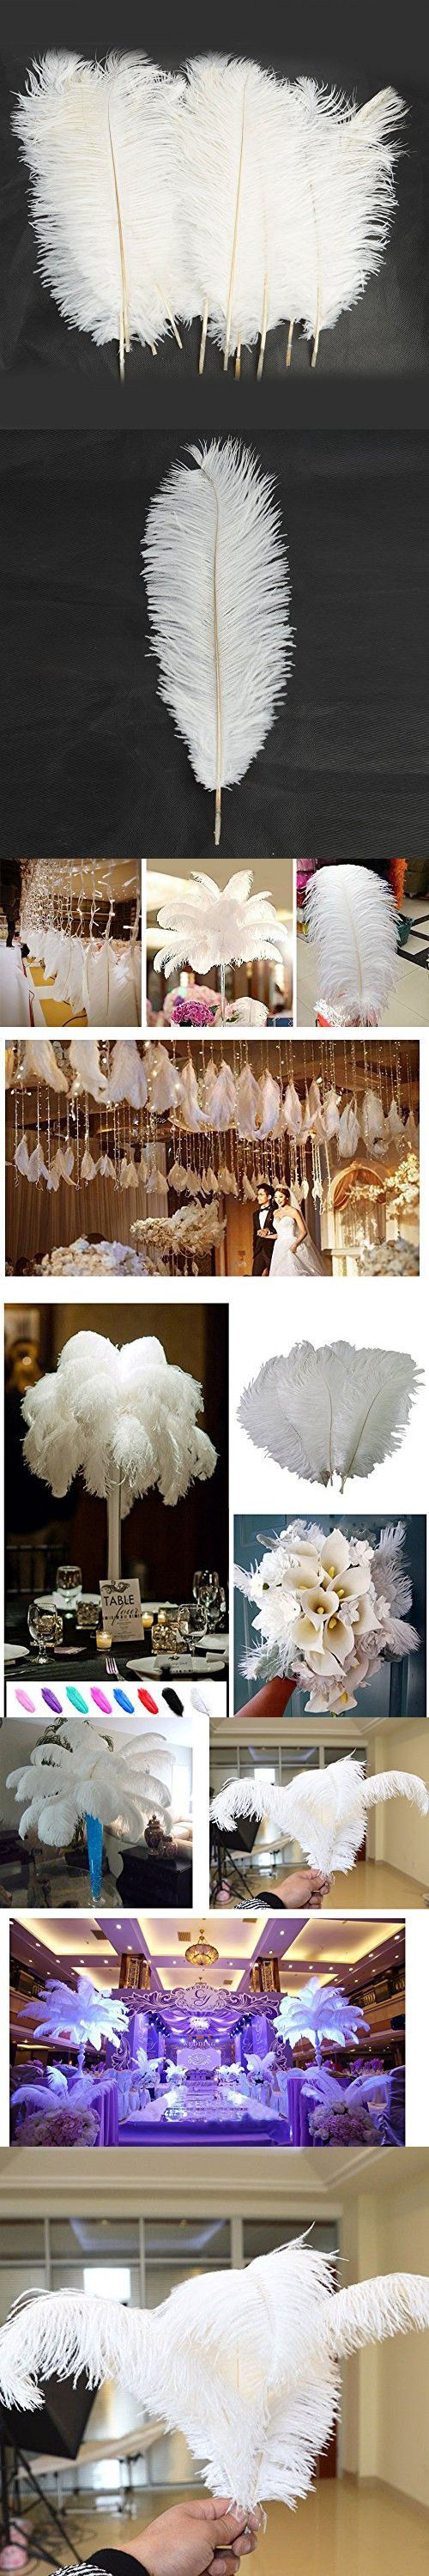 """10pcs Ostrich Feathers 12''-14"""" (30-35cm) Natural Feathers Plume for Home Wedding Centerpieces Decoration Feather Party Decor (White)"""